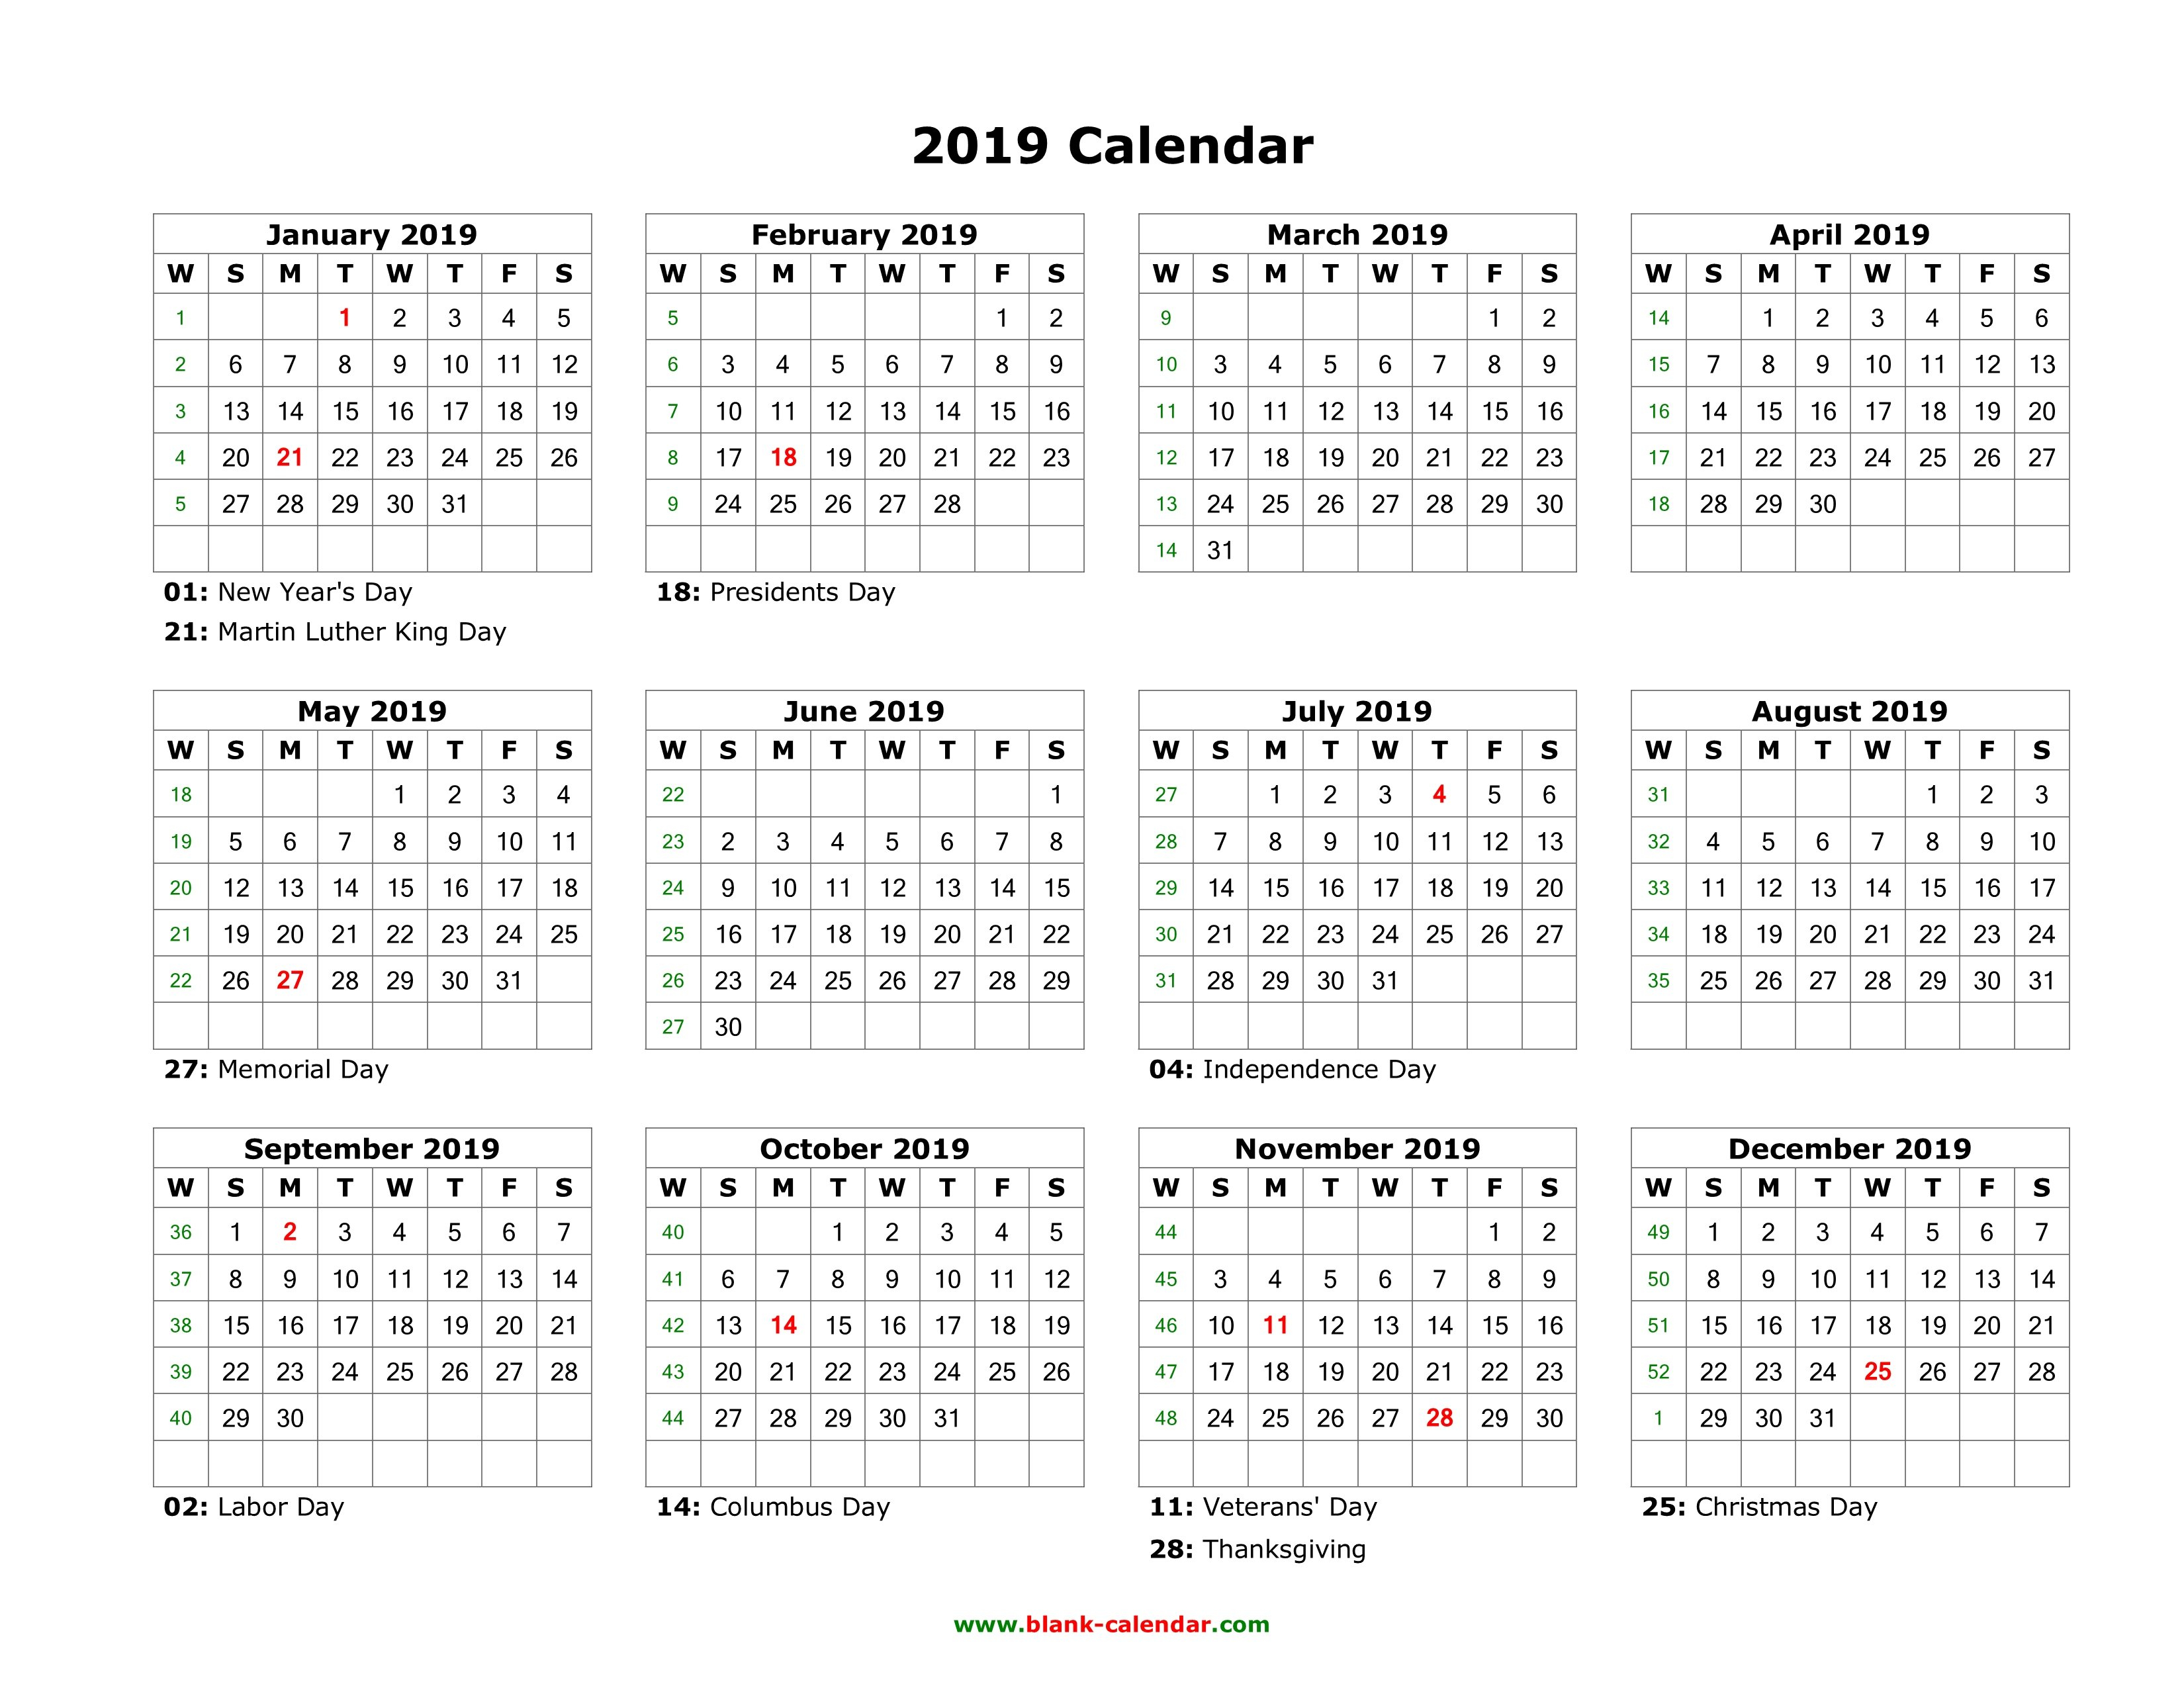 Blank Calendar 2019 | Free Download Calendar Templates Calendar 2019 Year Printable